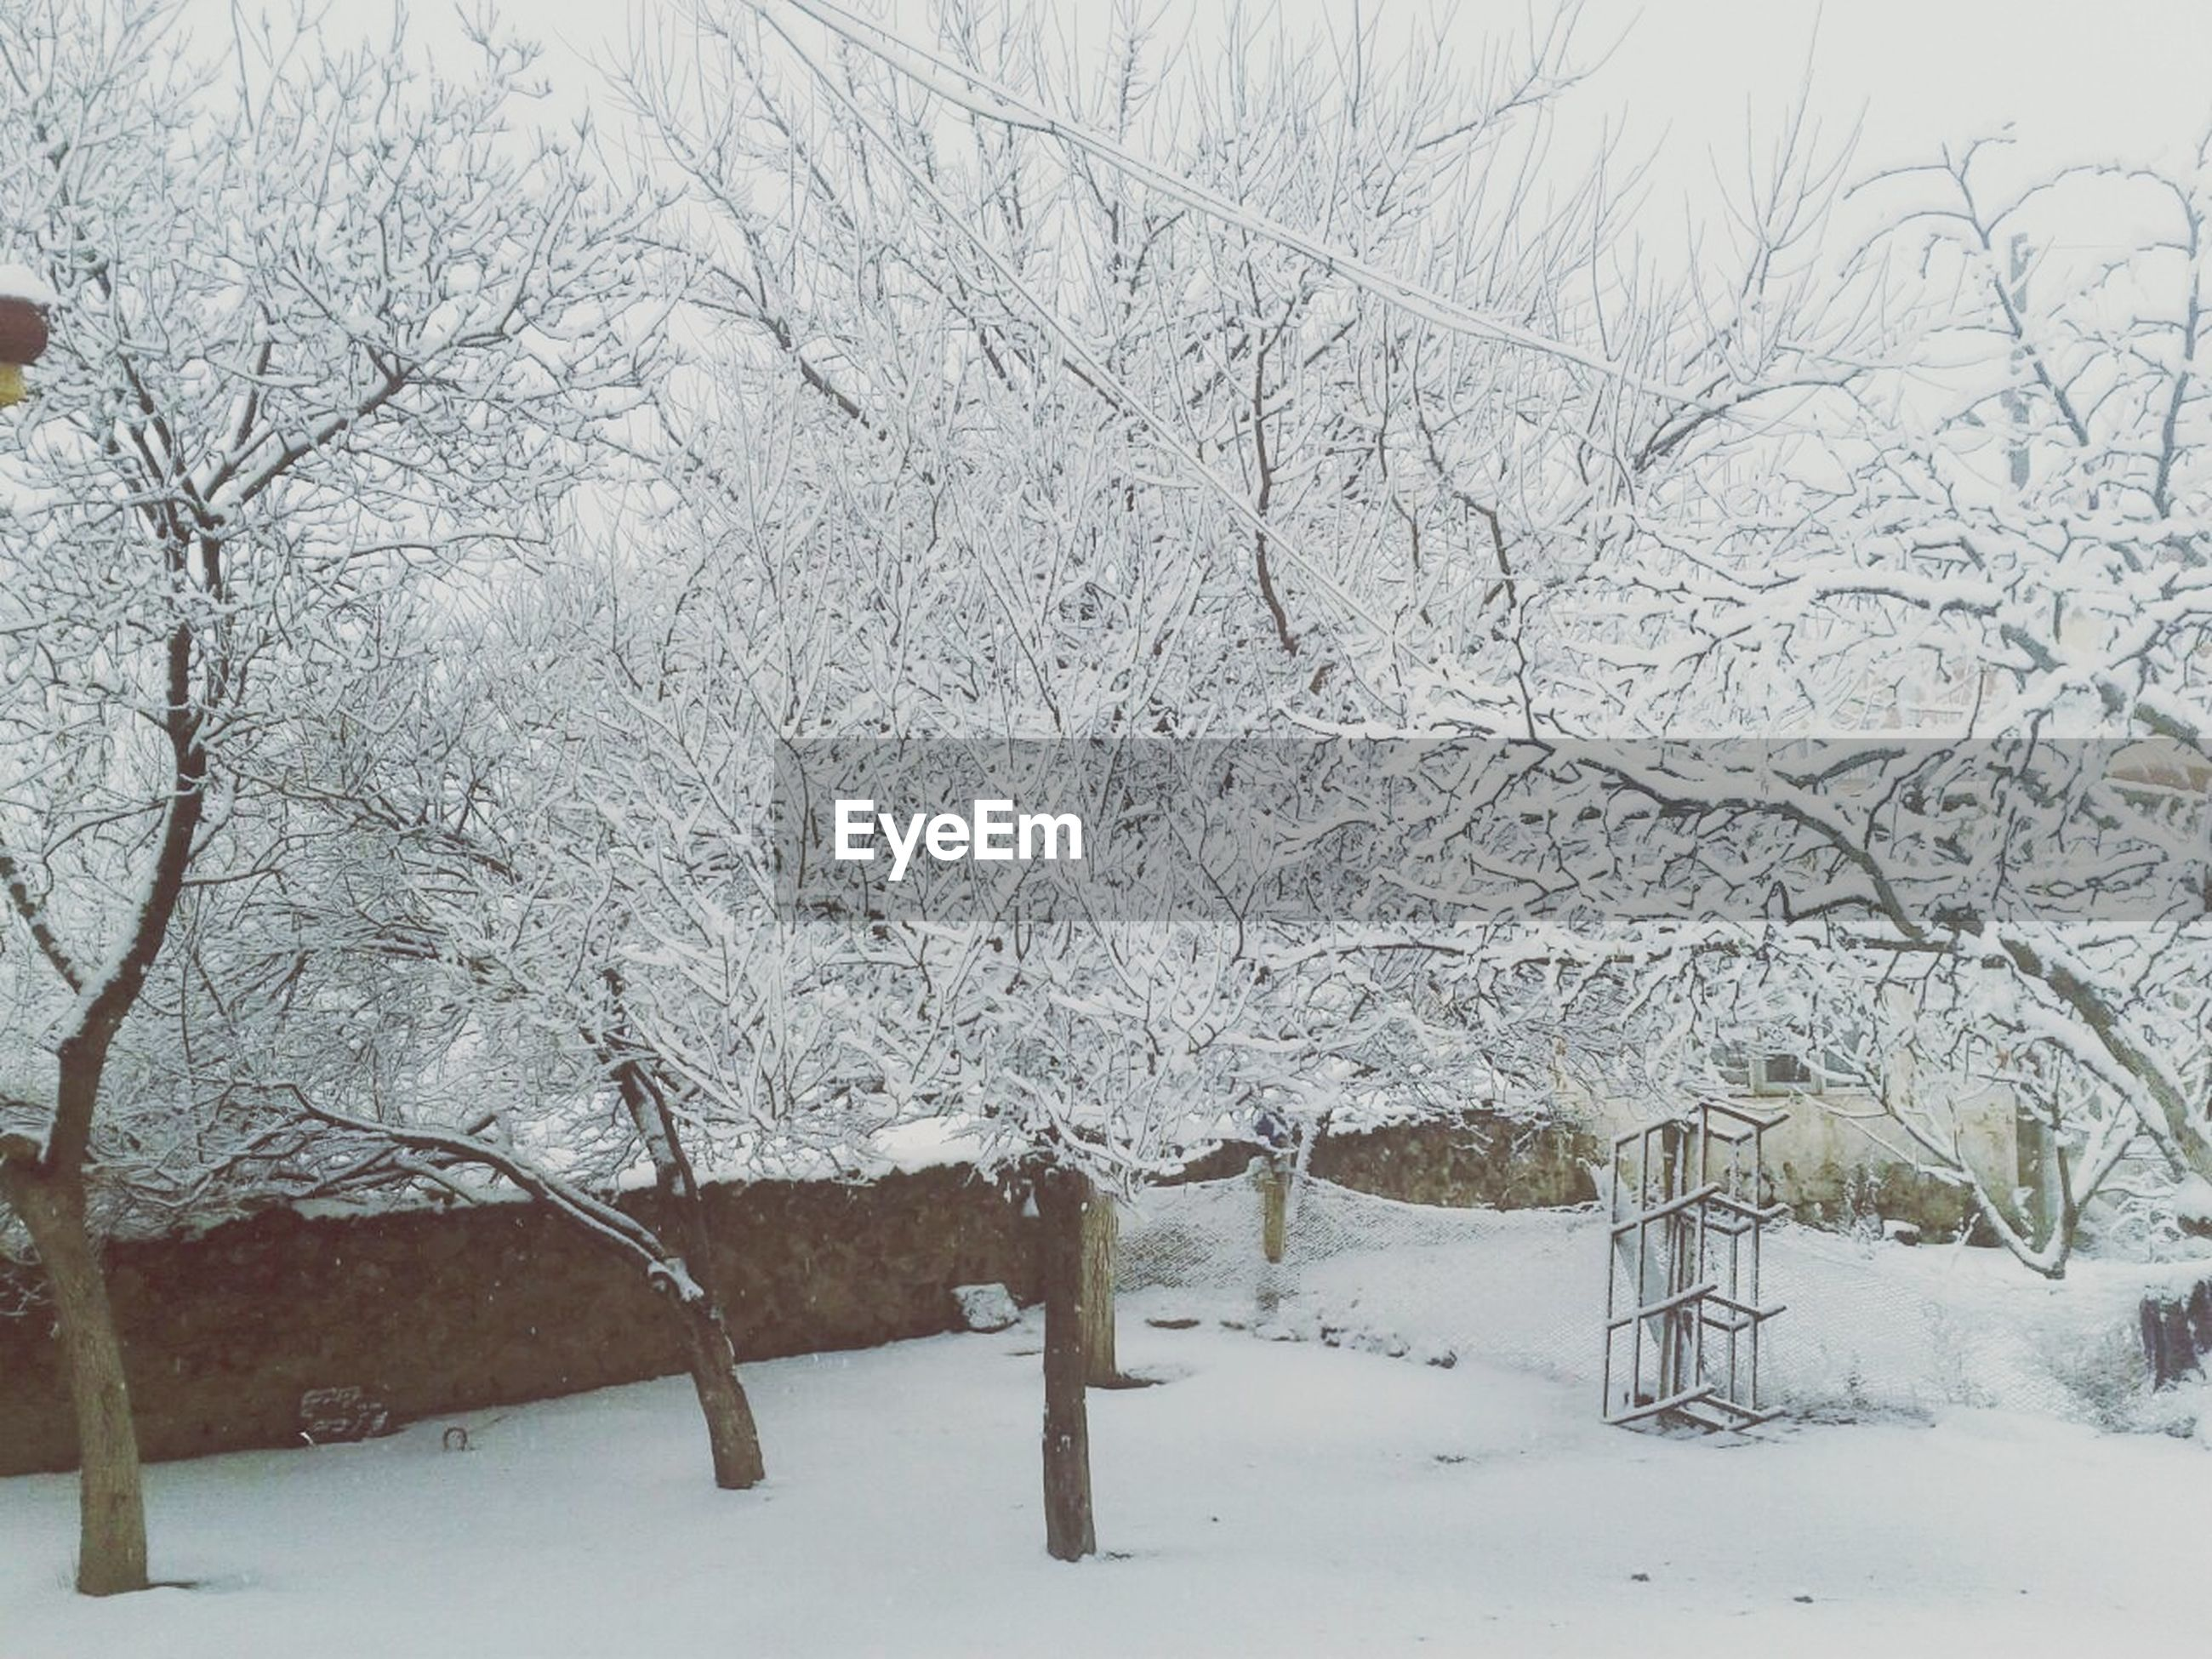 snow, winter, cold temperature, season, weather, covering, bare tree, tree, frozen, white color, nature, tranquility, branch, covered, tranquil scene, beauty in nature, landscape, snow covered, field, cold